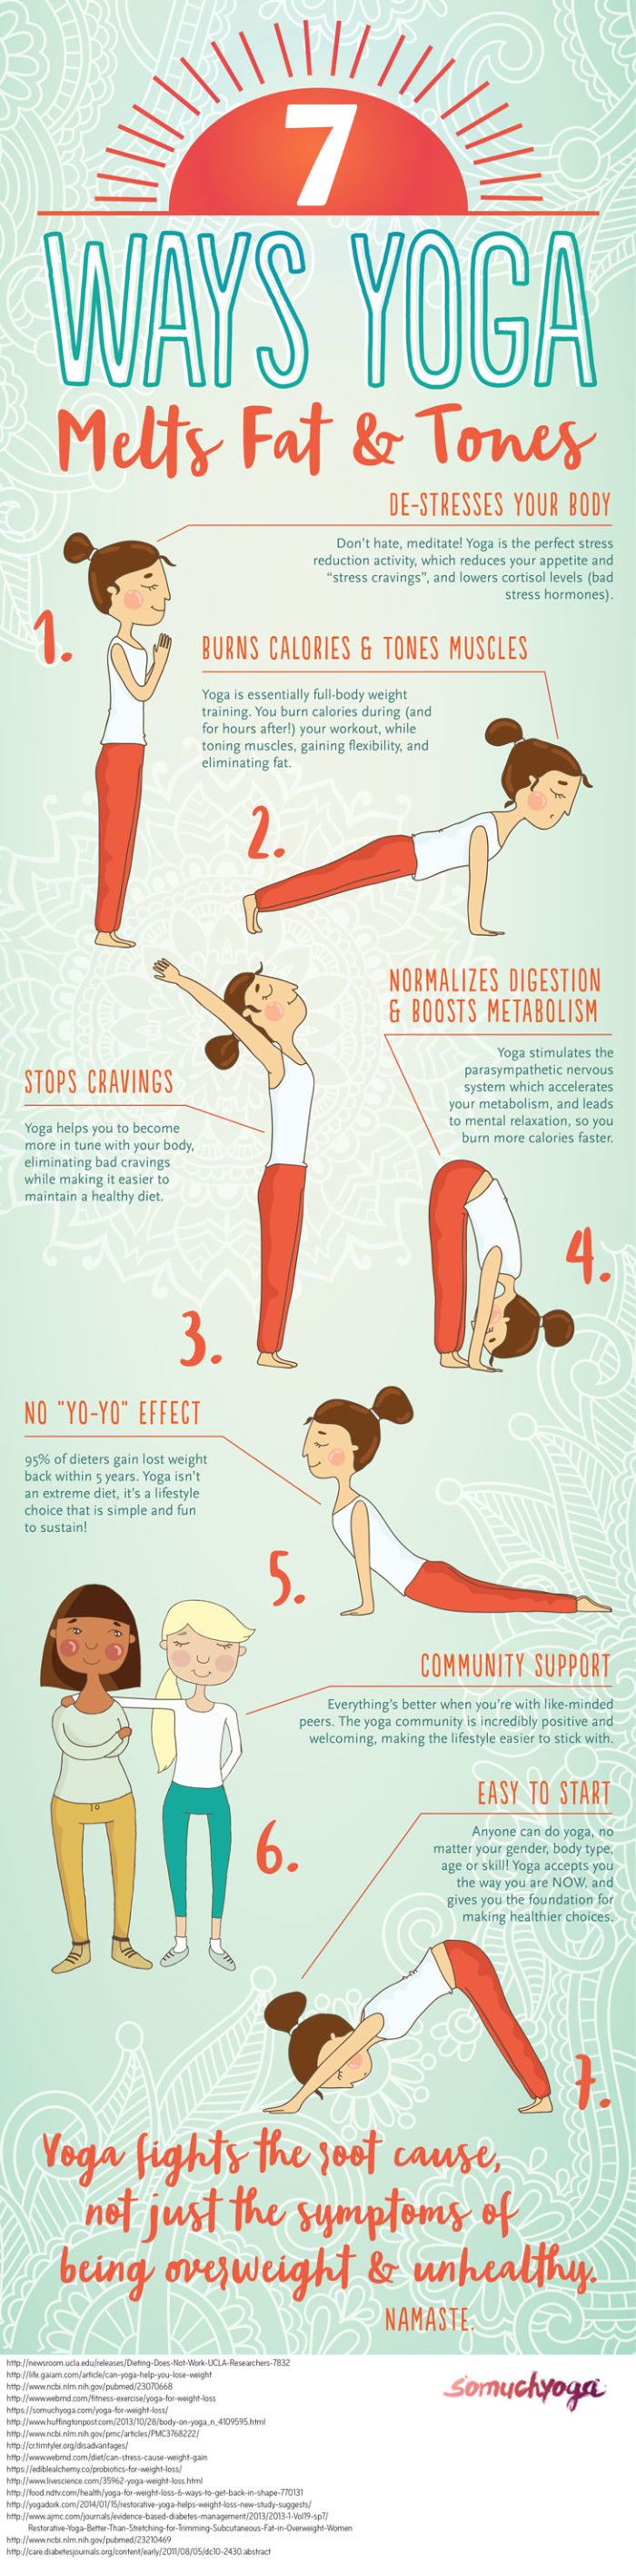 Yoga is a known stress buster. It's one of the most effective workouts for fighting stubborn fat stores. Yes, YOU CAN USE YOGA FOR WEIGHT LOSS! Here are 7 ways yoga can help you lose weight. Start now to see weight loss results while firming up your arms, legs, butt and